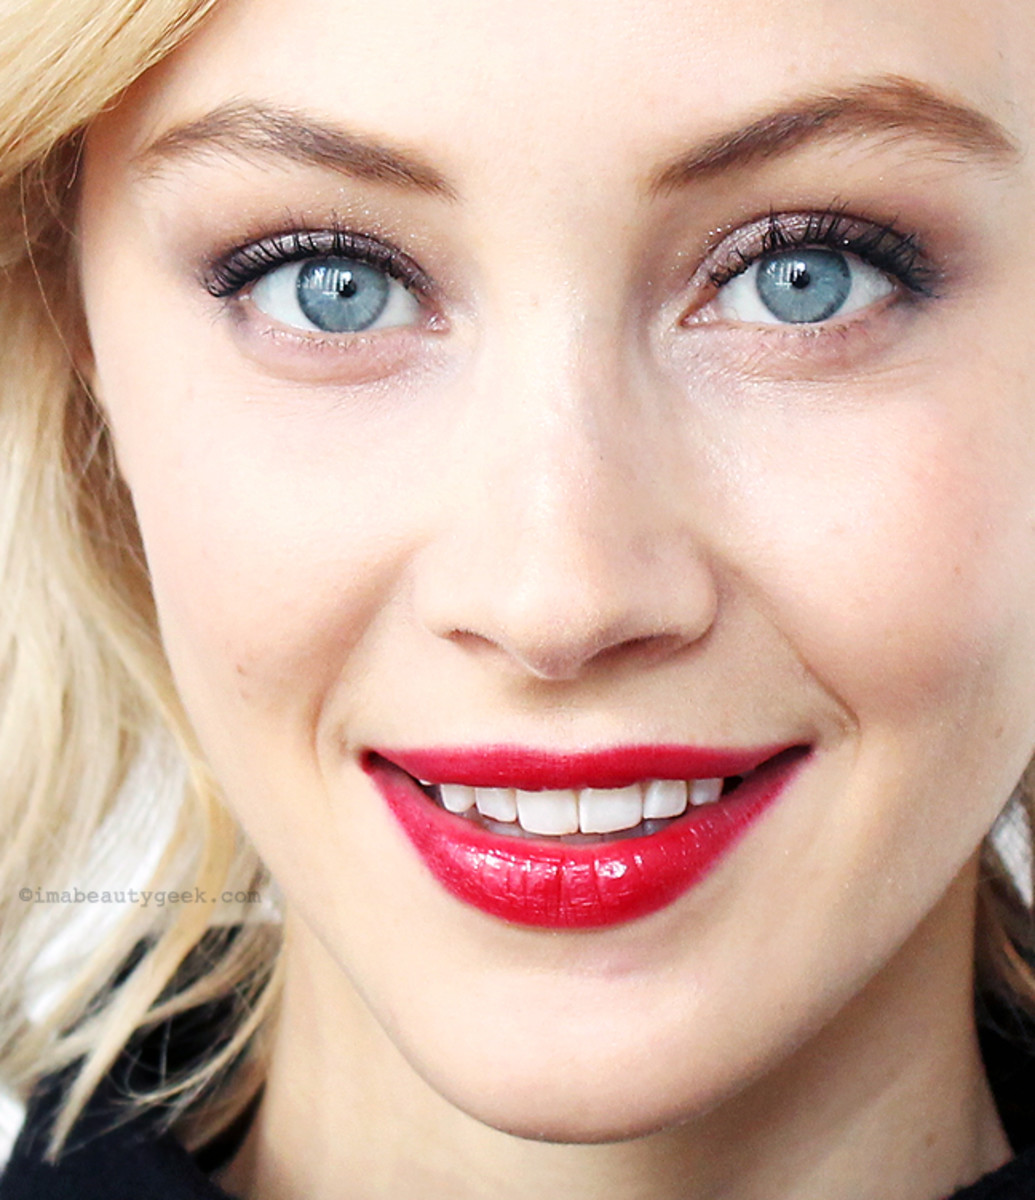 Extreme closeup: Sarah Gadon in Toronto at The Four Seasons hotel, October 2015. Makeup by Cedric Jolivet for Giorgio Armani Beauty.